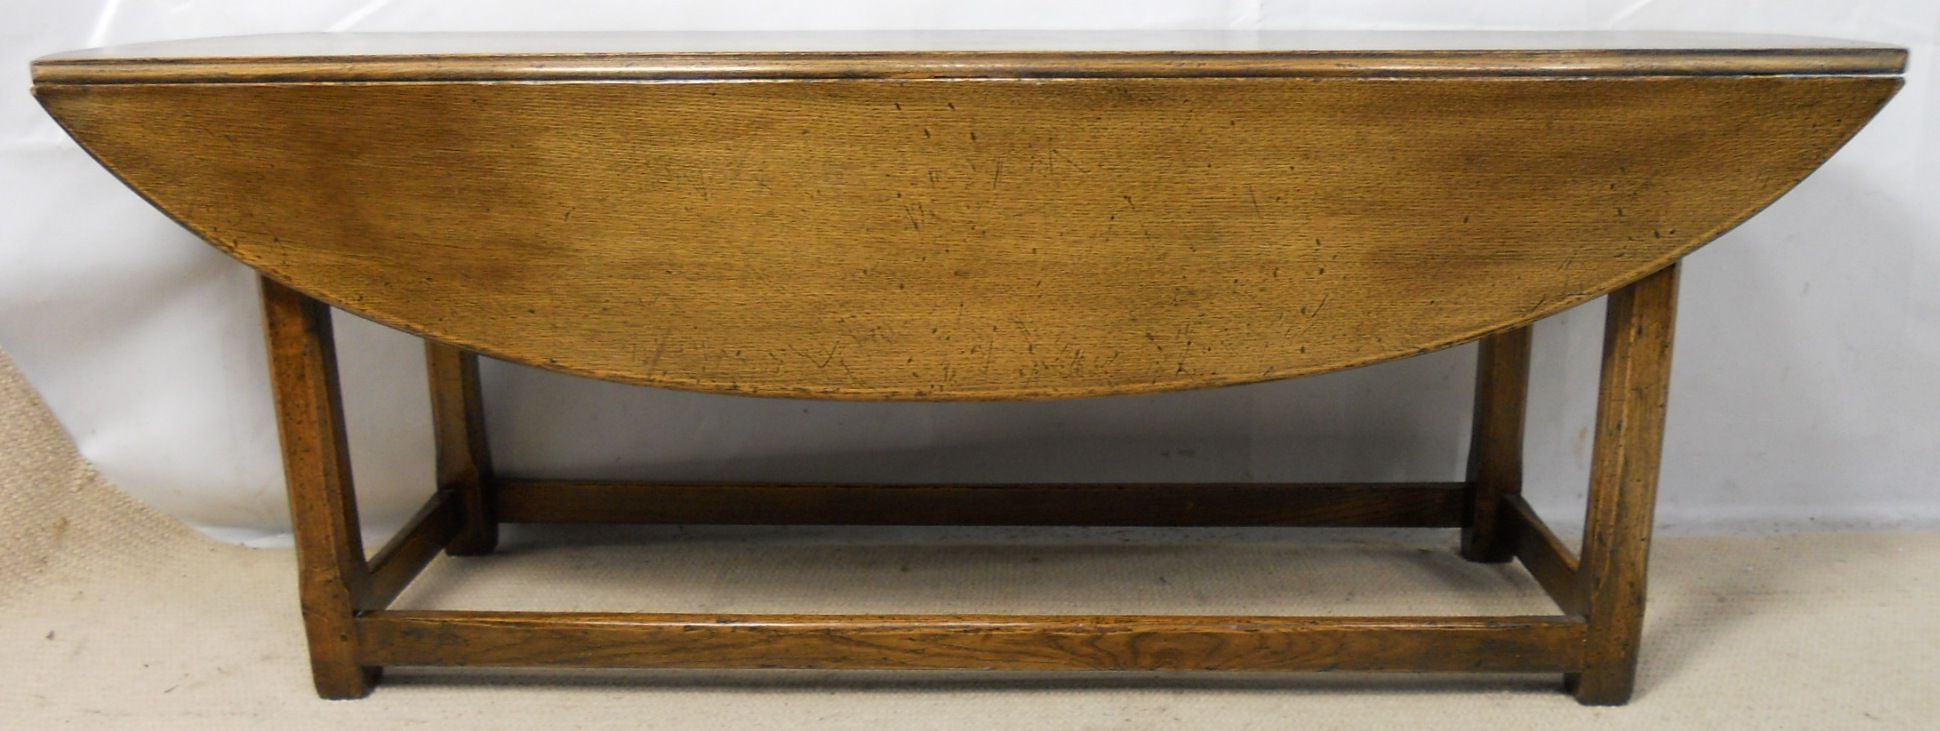 Large Dropleaf Narrow Oak Coffee Table By Titchmarsh Goodwin